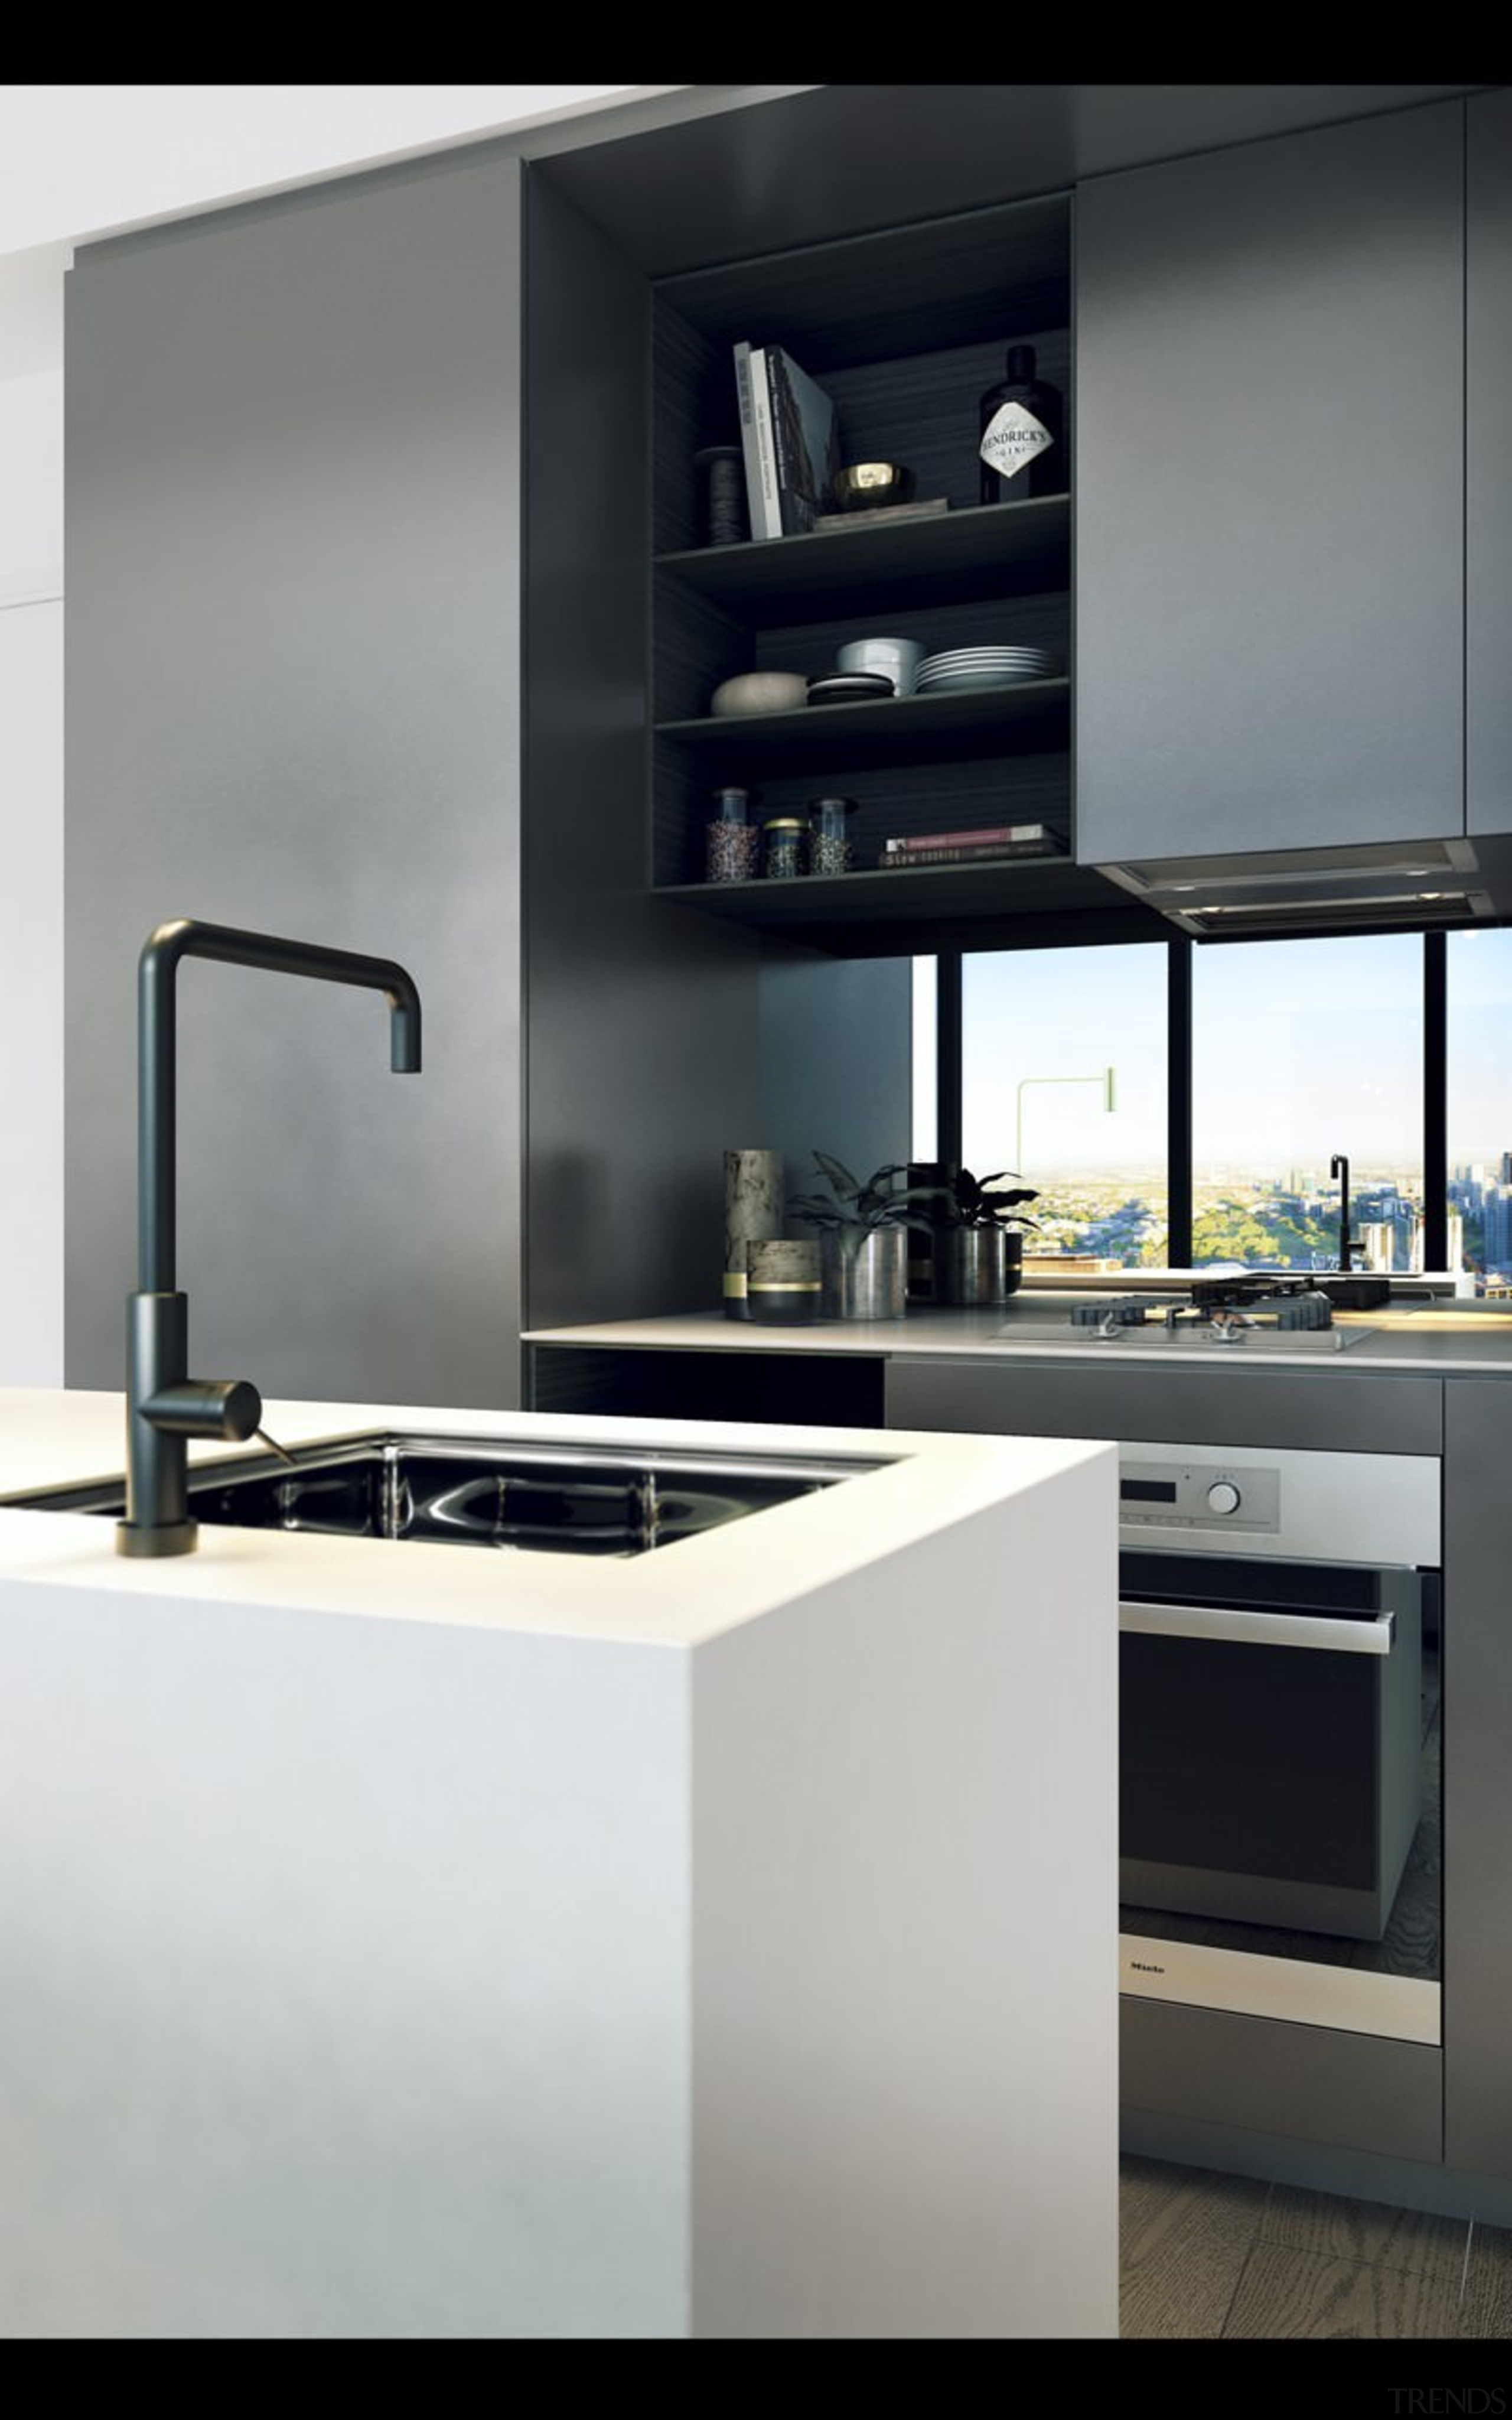 This kitchen makes the most of the space countertop, home appliance, interior design, kitchen, kitchen appliance, kitchen stove, product design, sink, small appliance, tap, gray, black, white